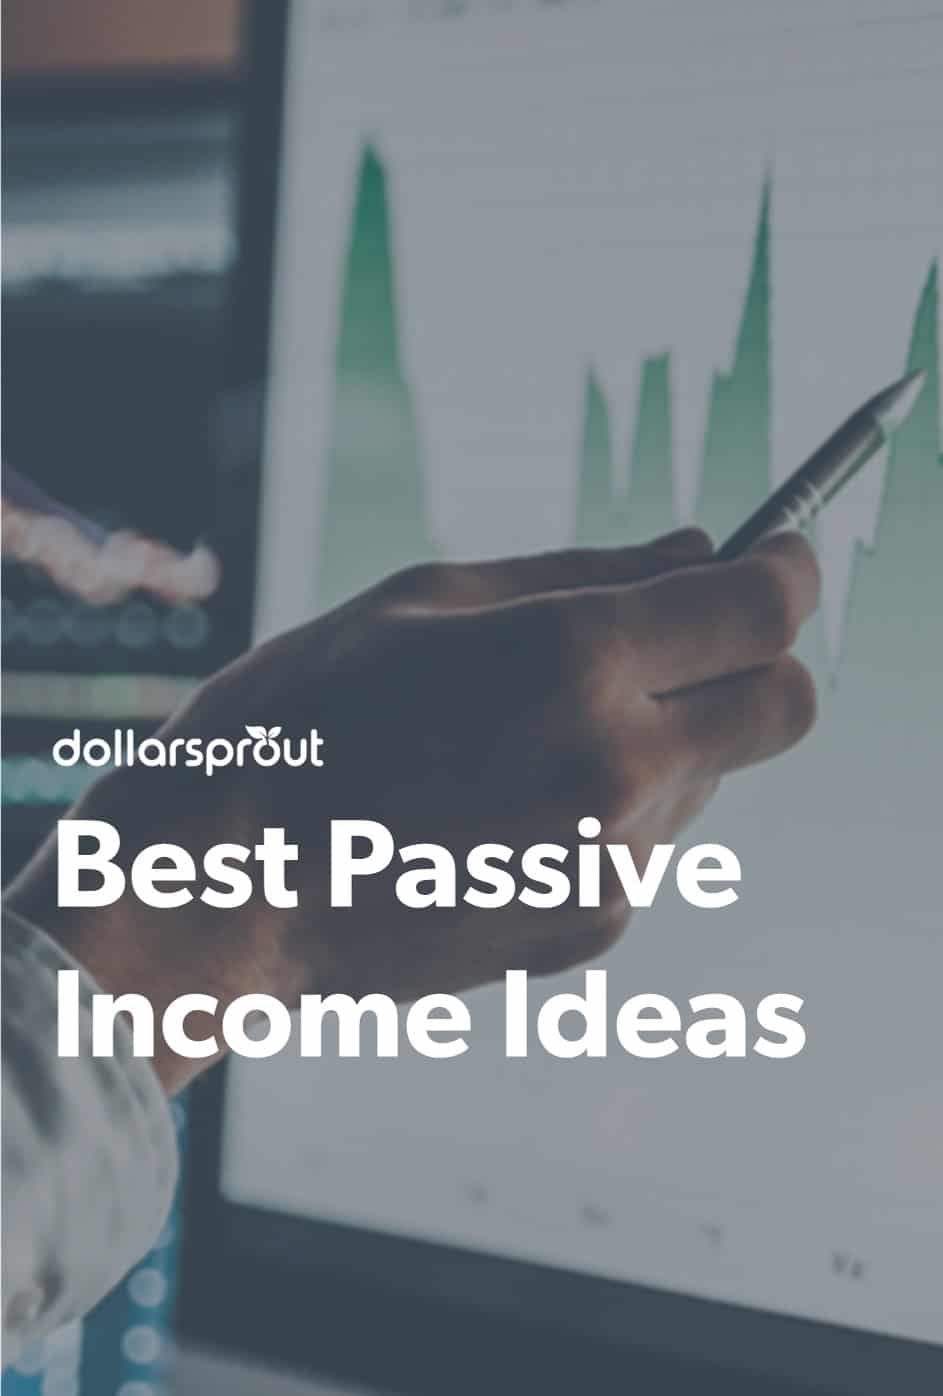 It's time to stop trading your time for money. Here's a list of 13 easy passive income ideas you can use to start establishing an extra revenue stream today. Some you can start online right now. Other ways will require up front (active) work, but will pay dividends later. It's all up to you!